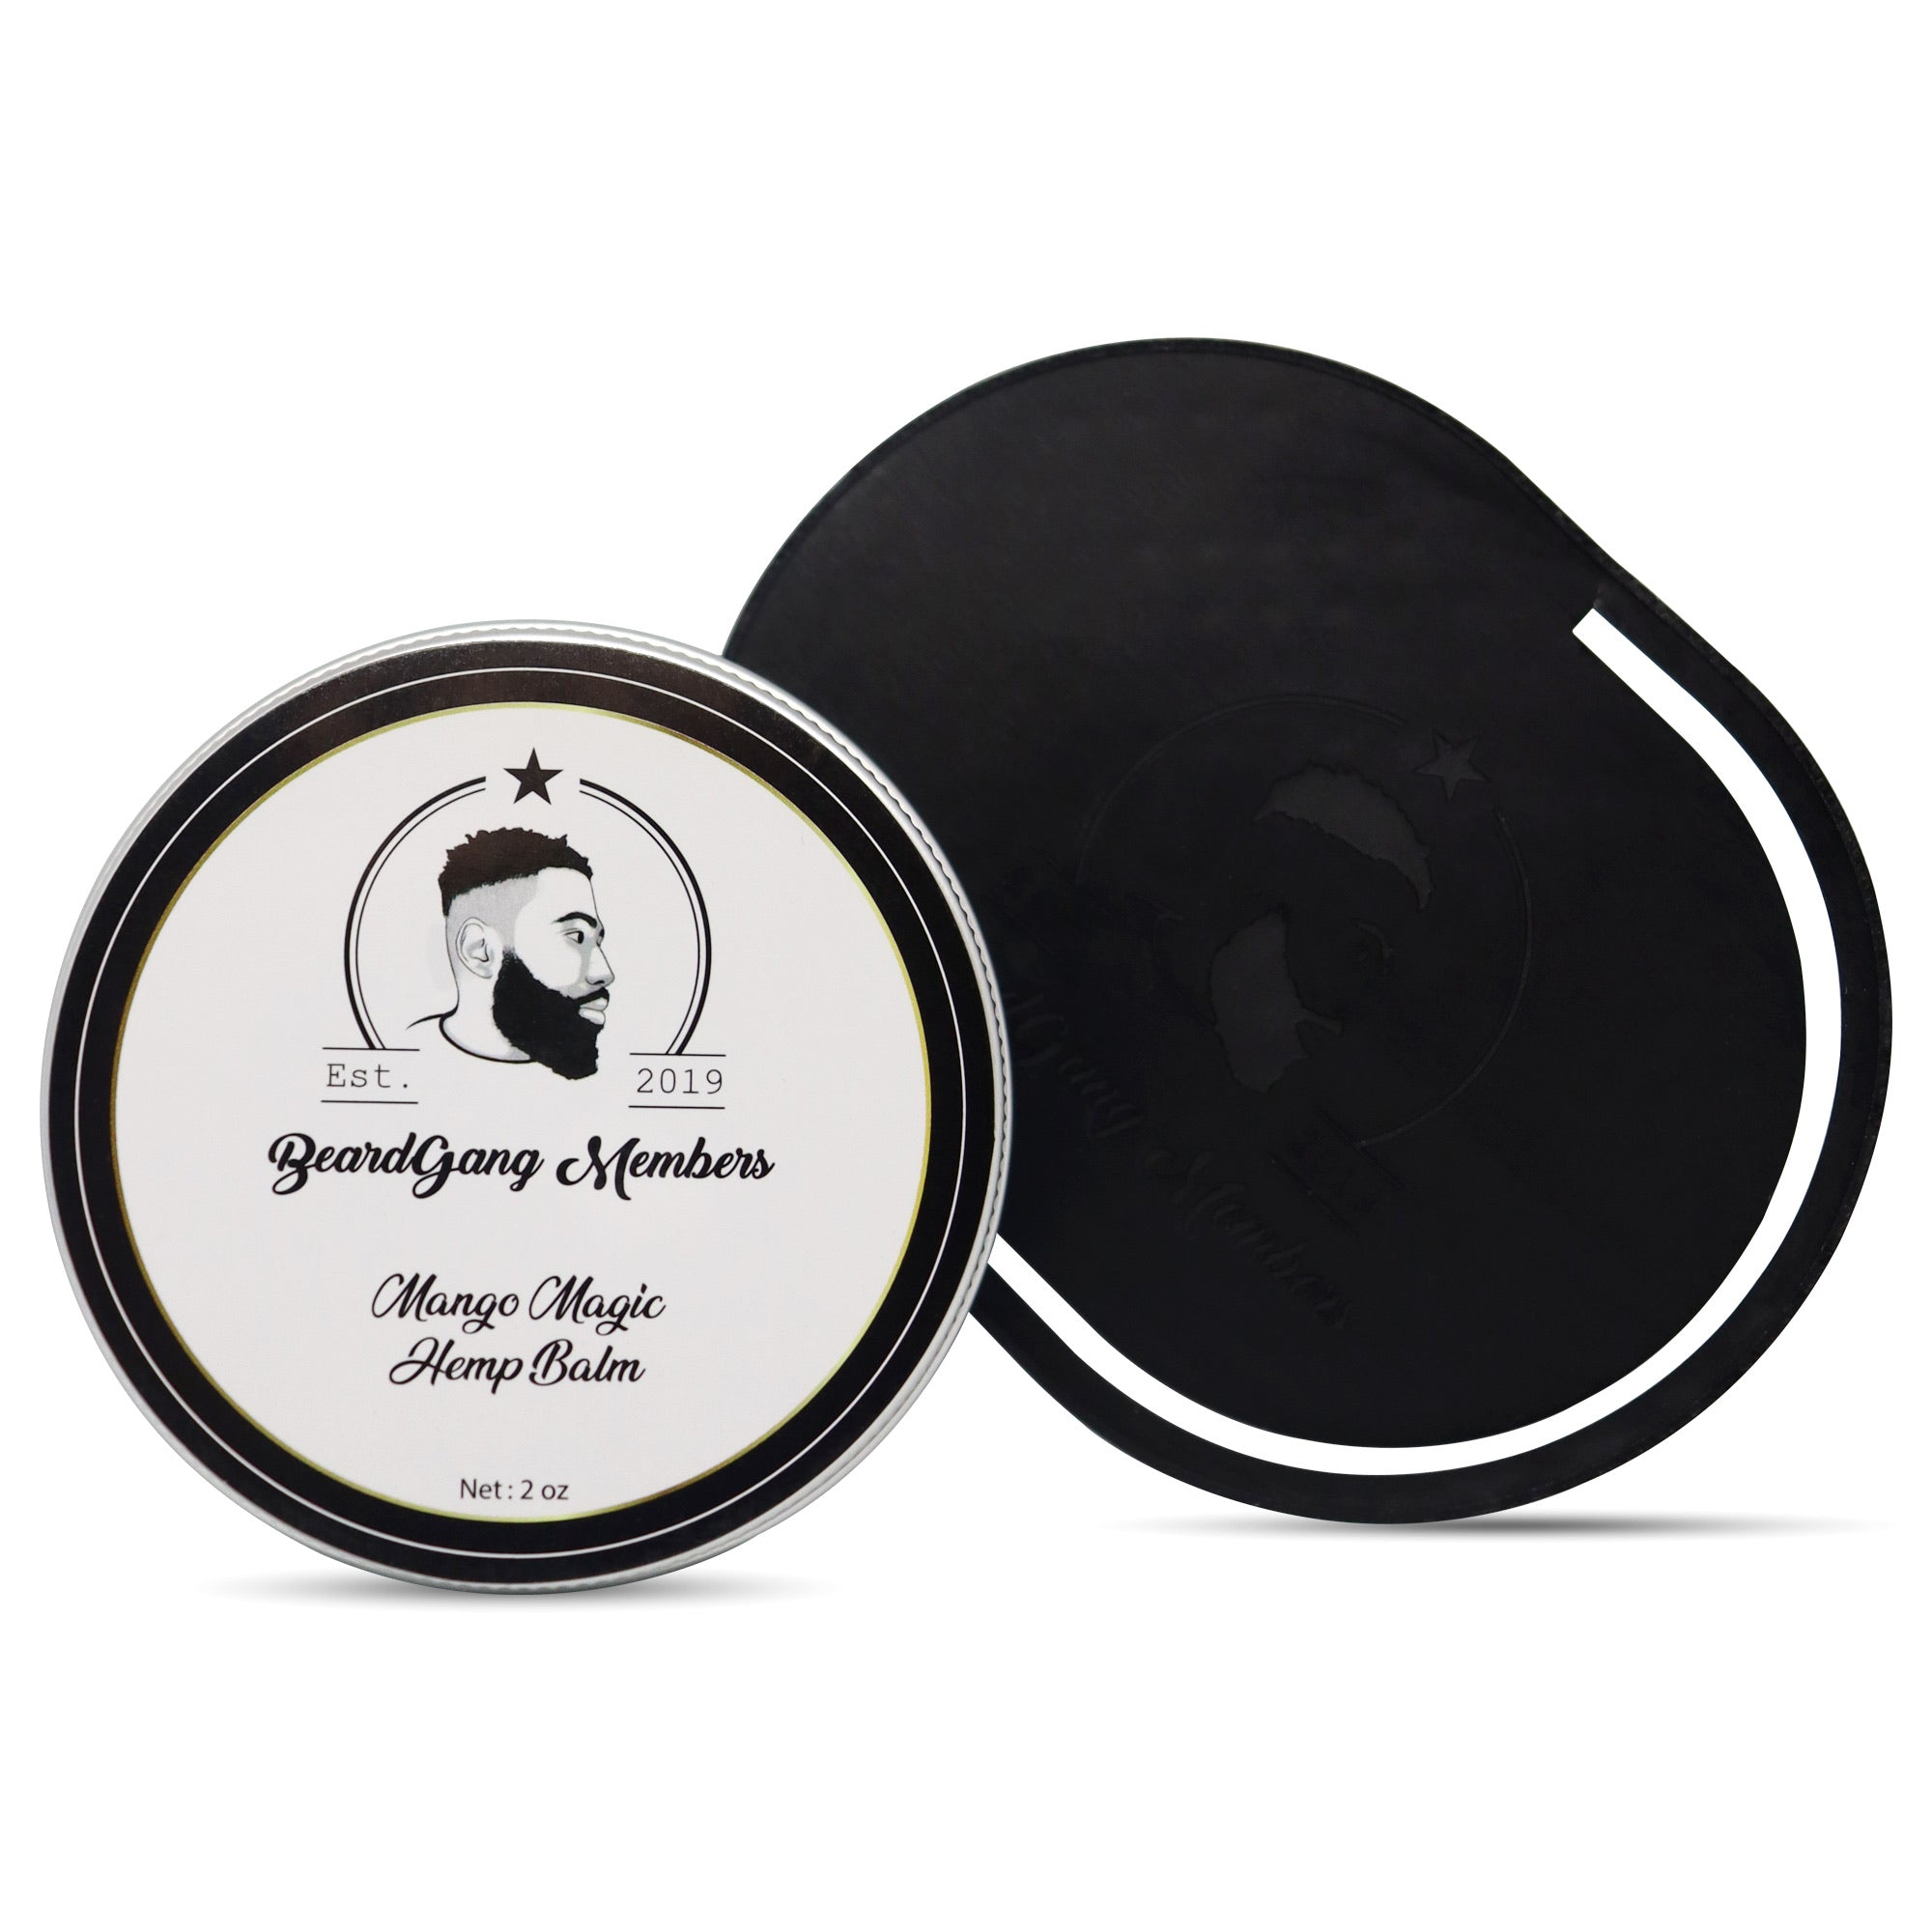 Mango Magic Beard Kit XL-Balms-BeardGang Members